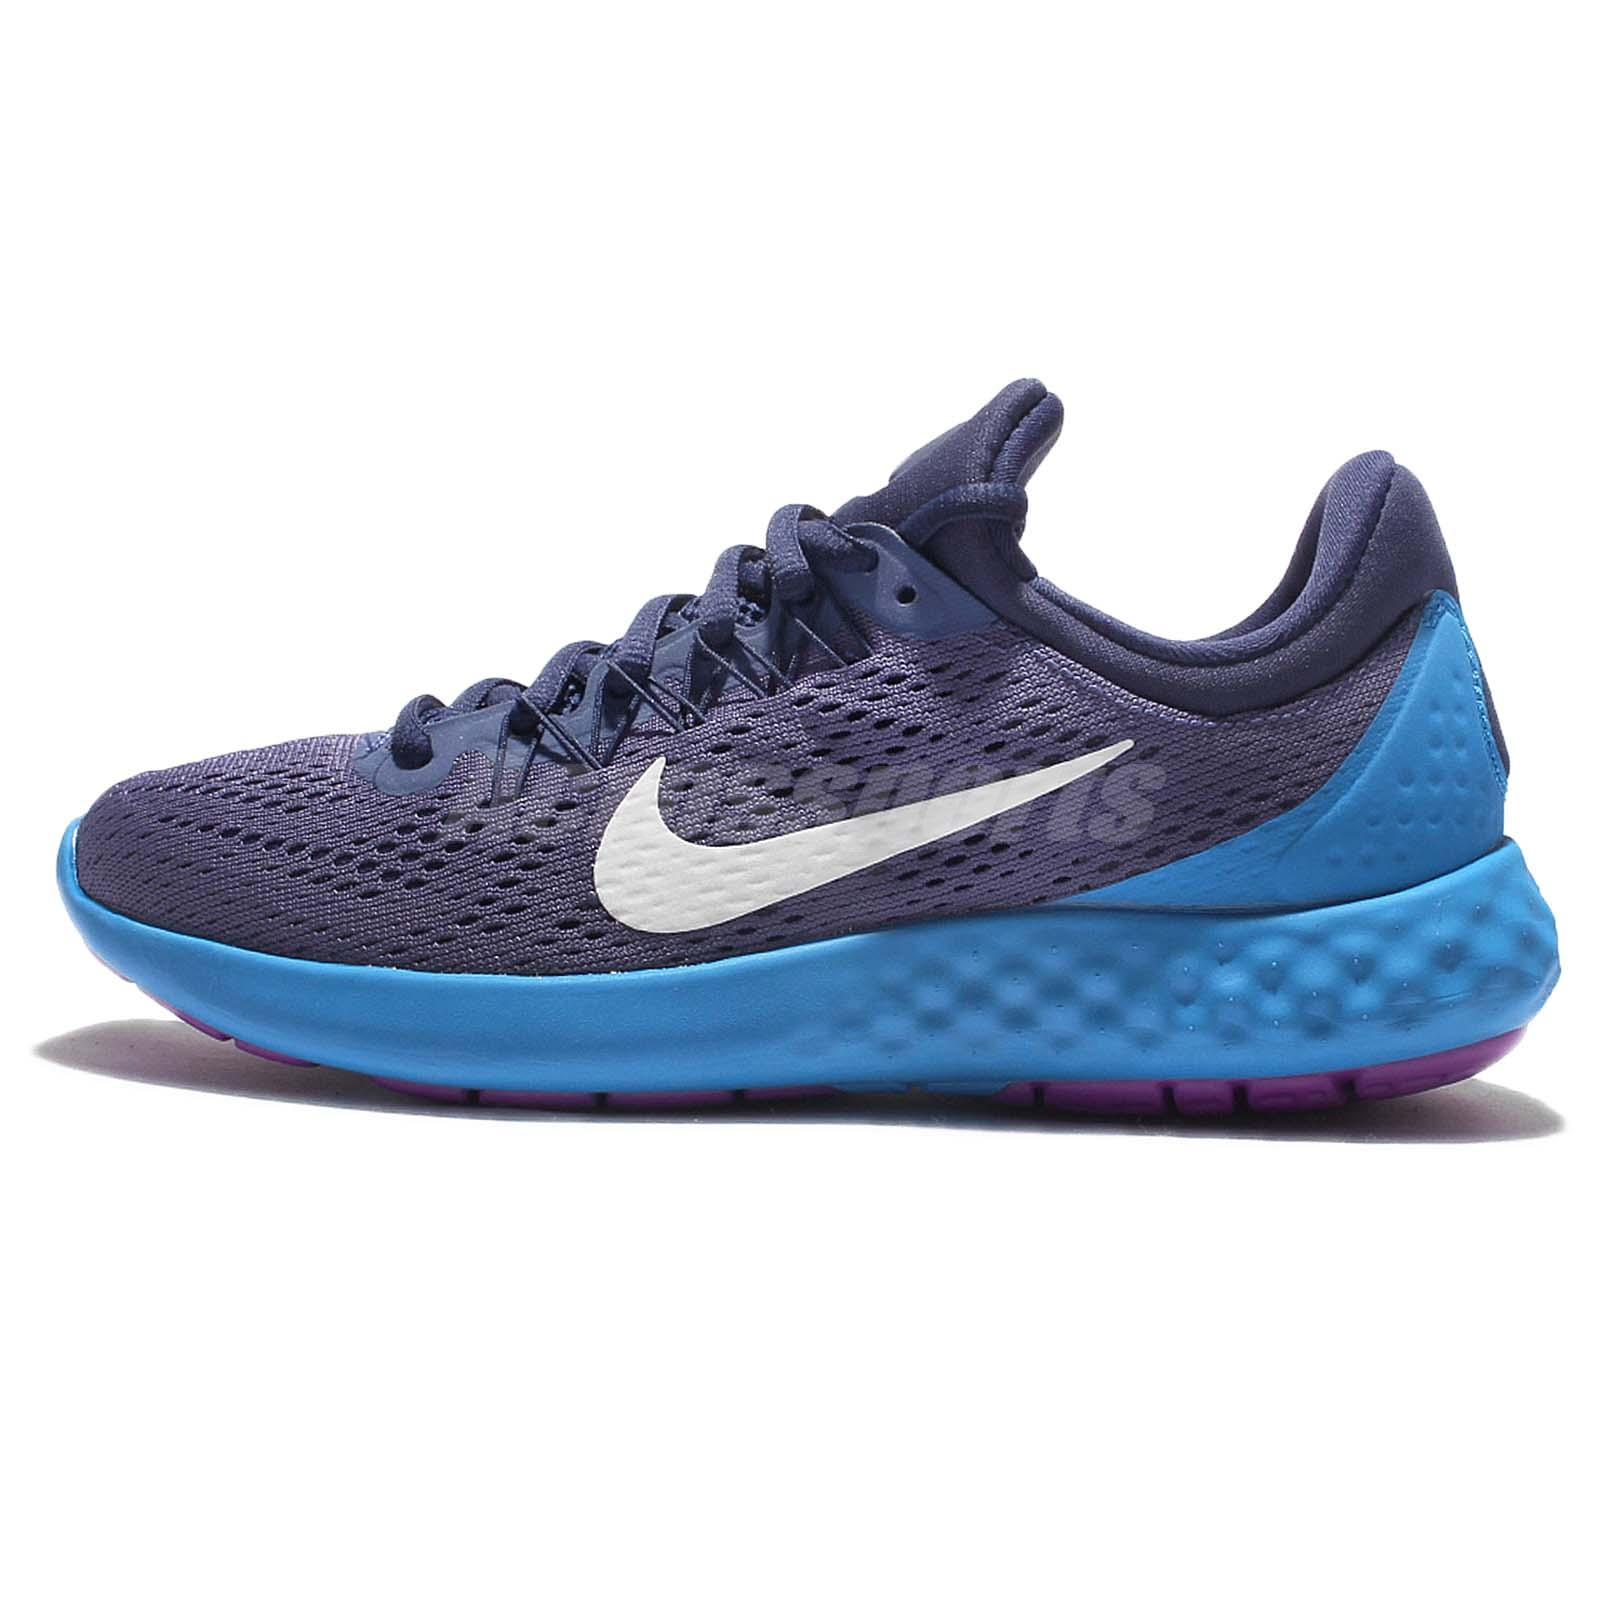 Wmns Nike Lunar Skyelux Blue White Womens Running Shoes Sneakers 855810-501